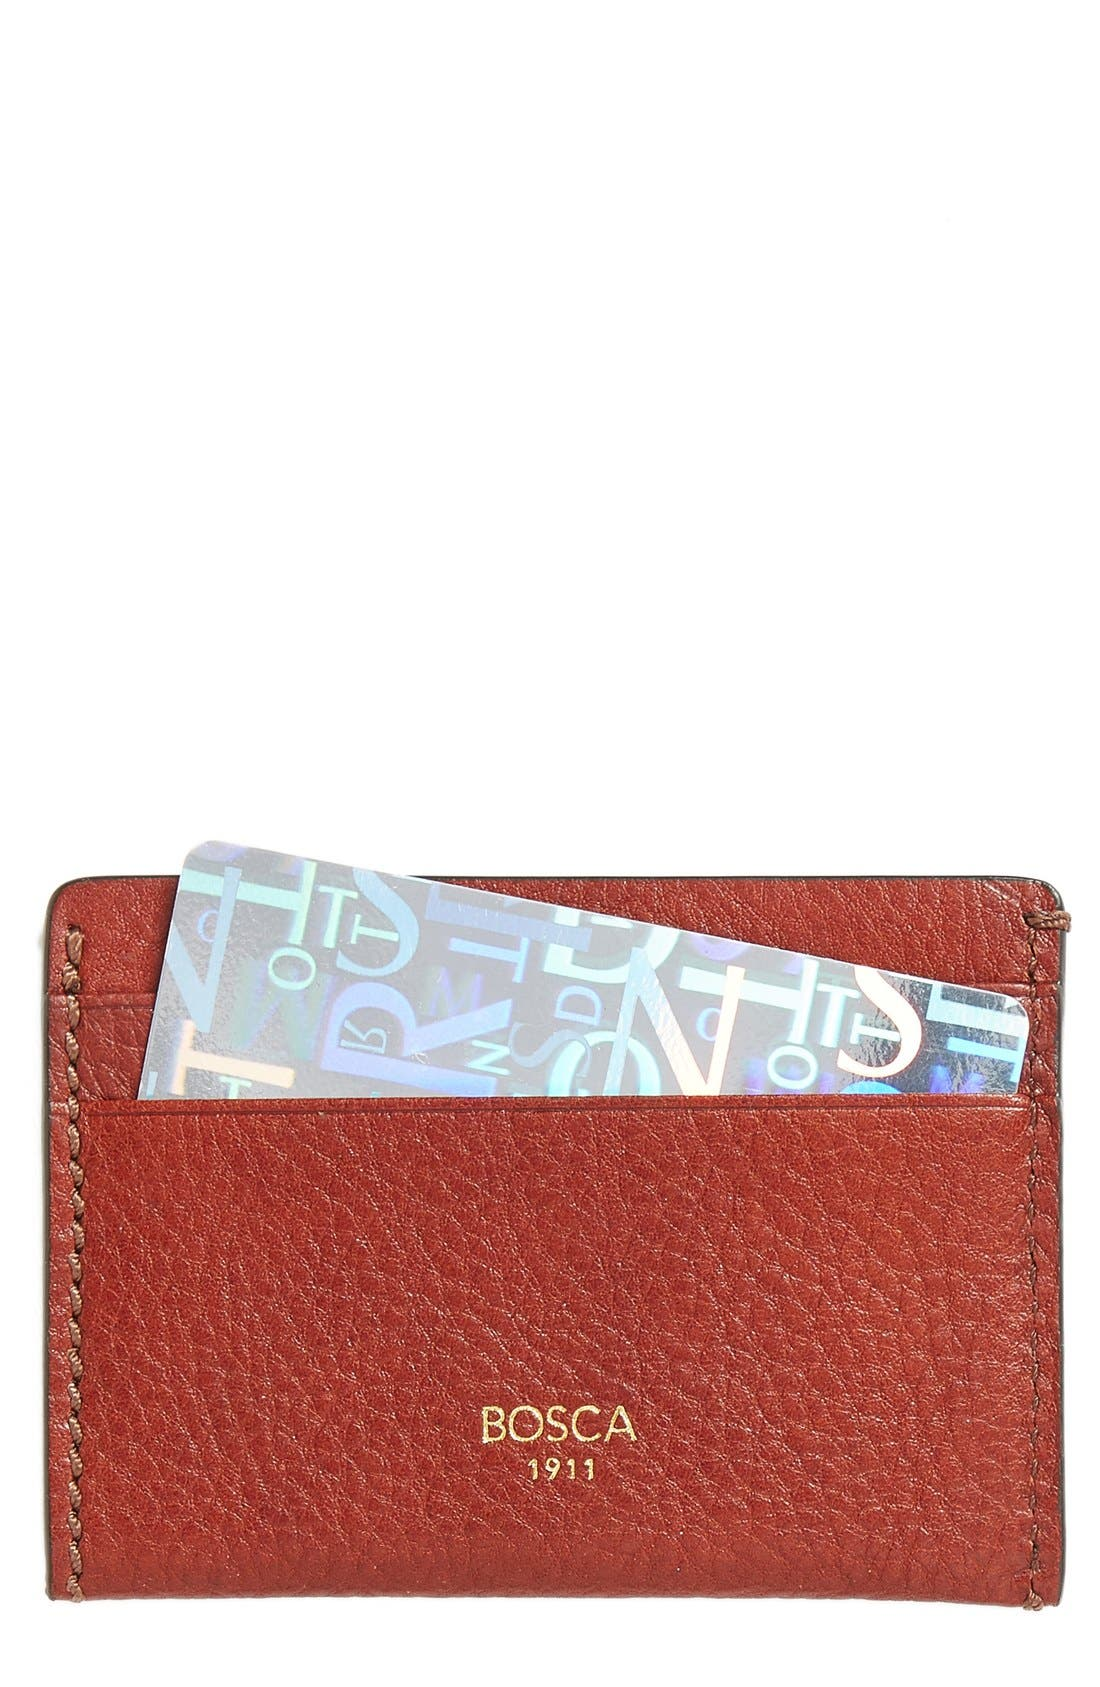 Alternate Image 1 Selected - Bosca Leather Card Case